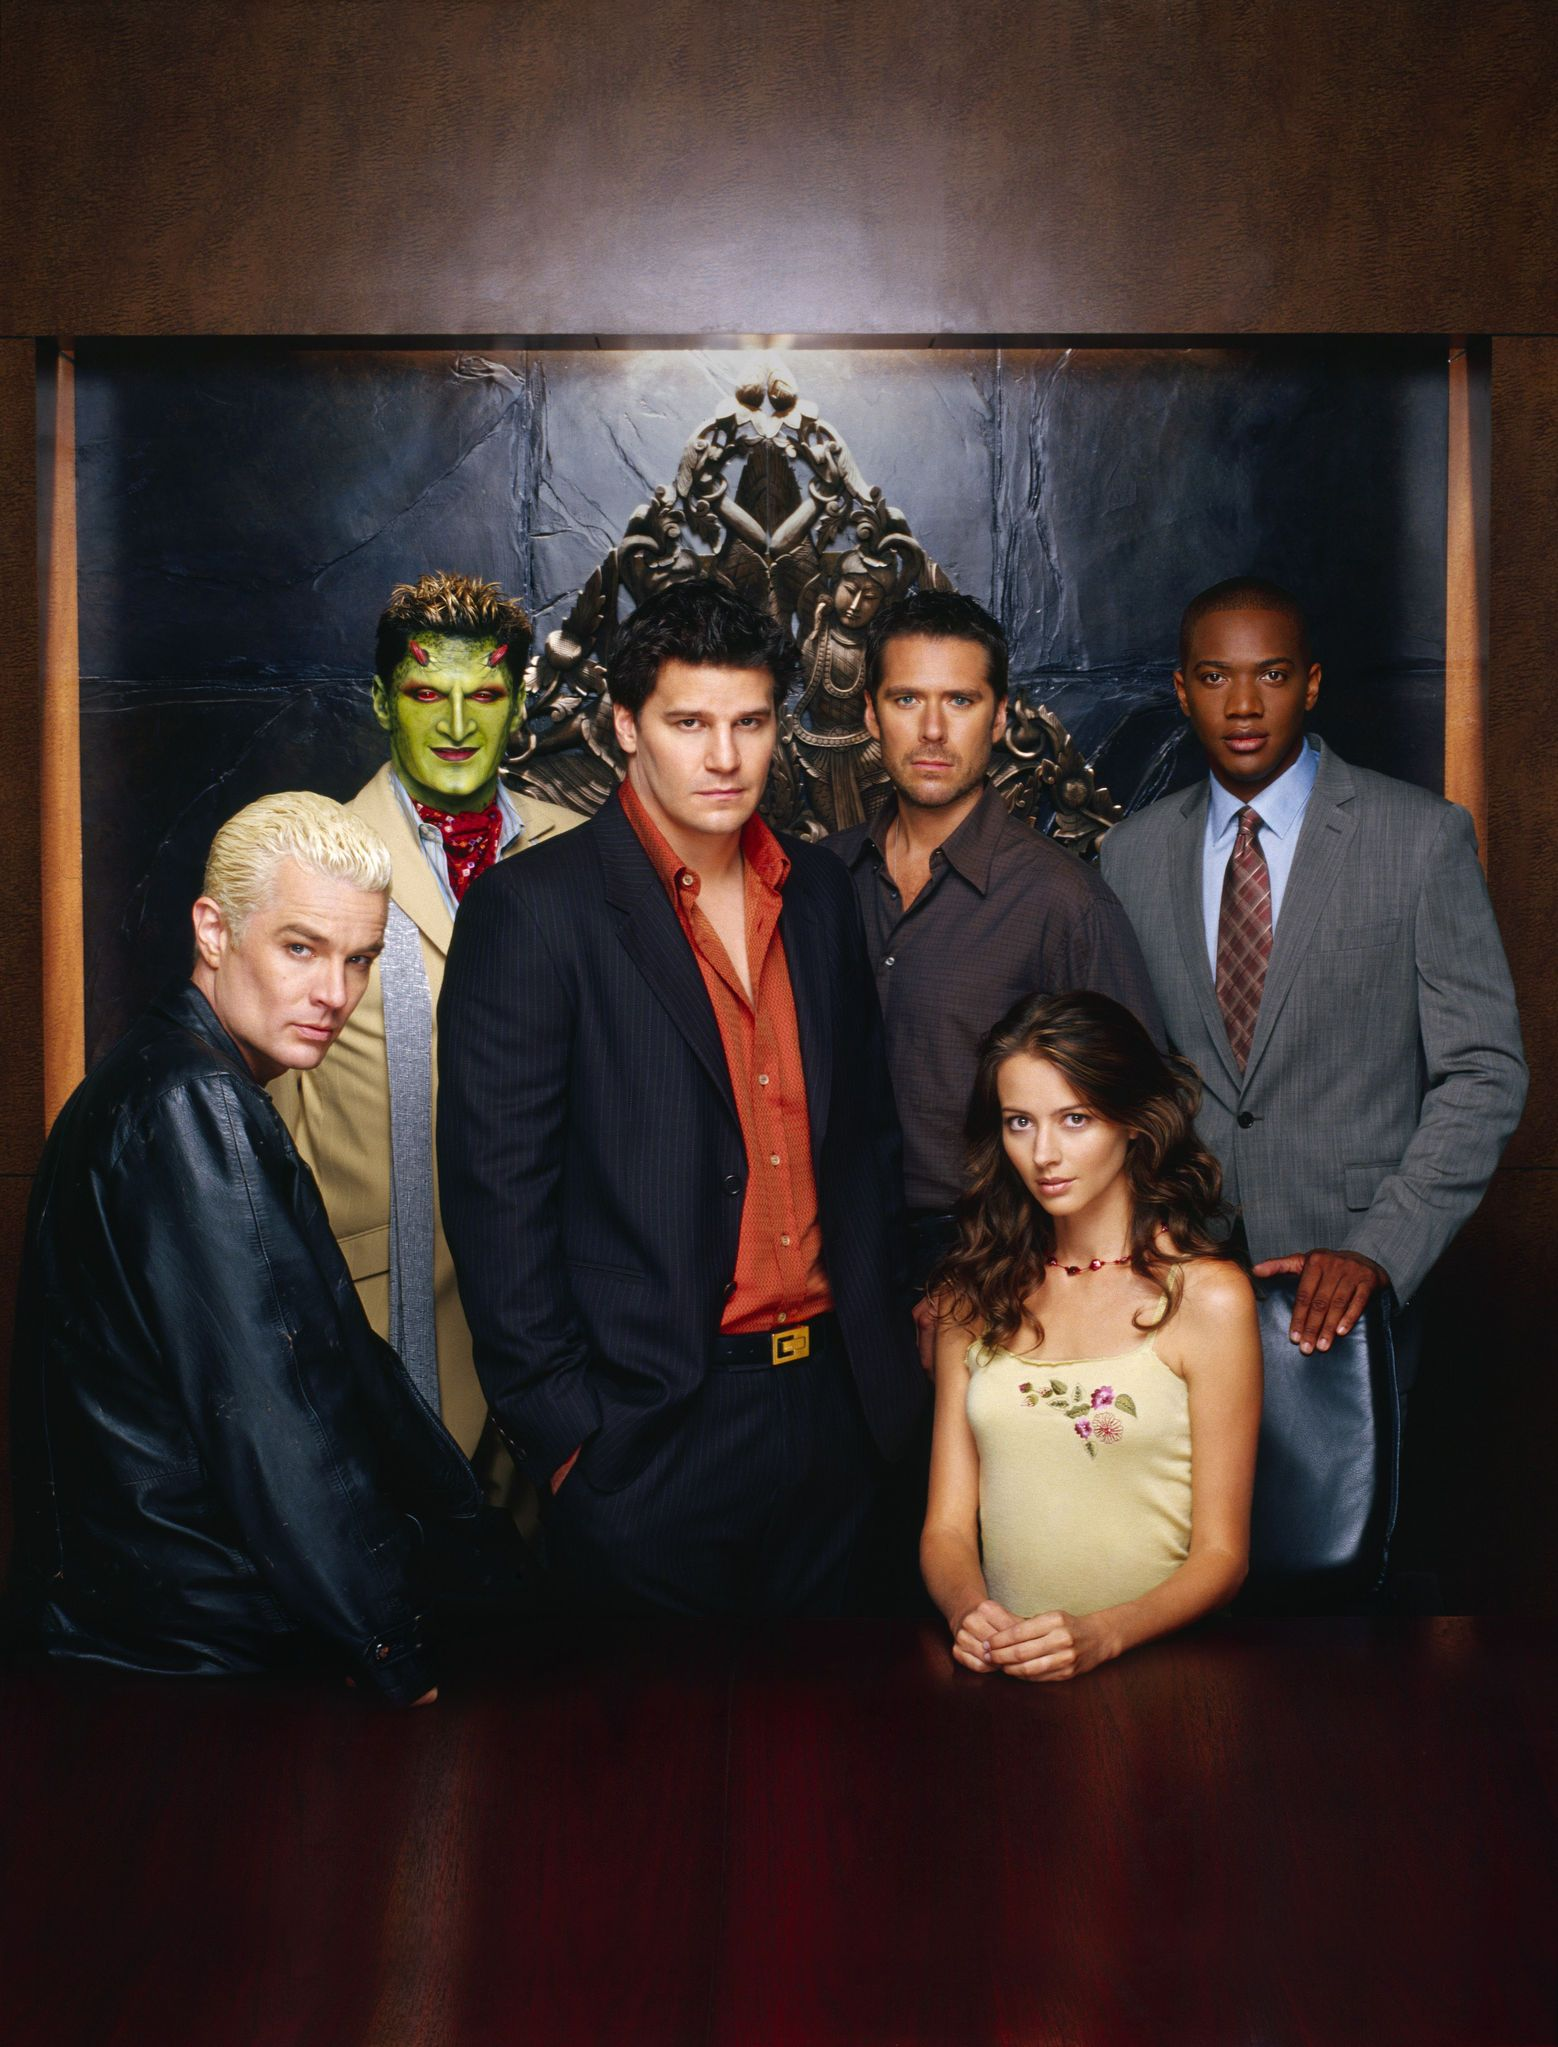 angel s5 cast david boreanaz angel james marsters spike amy wyndam pryce alexis denisof charles gunn j richards winifred fred burkle illyria amy acker lorne andy hallet spike james marsters